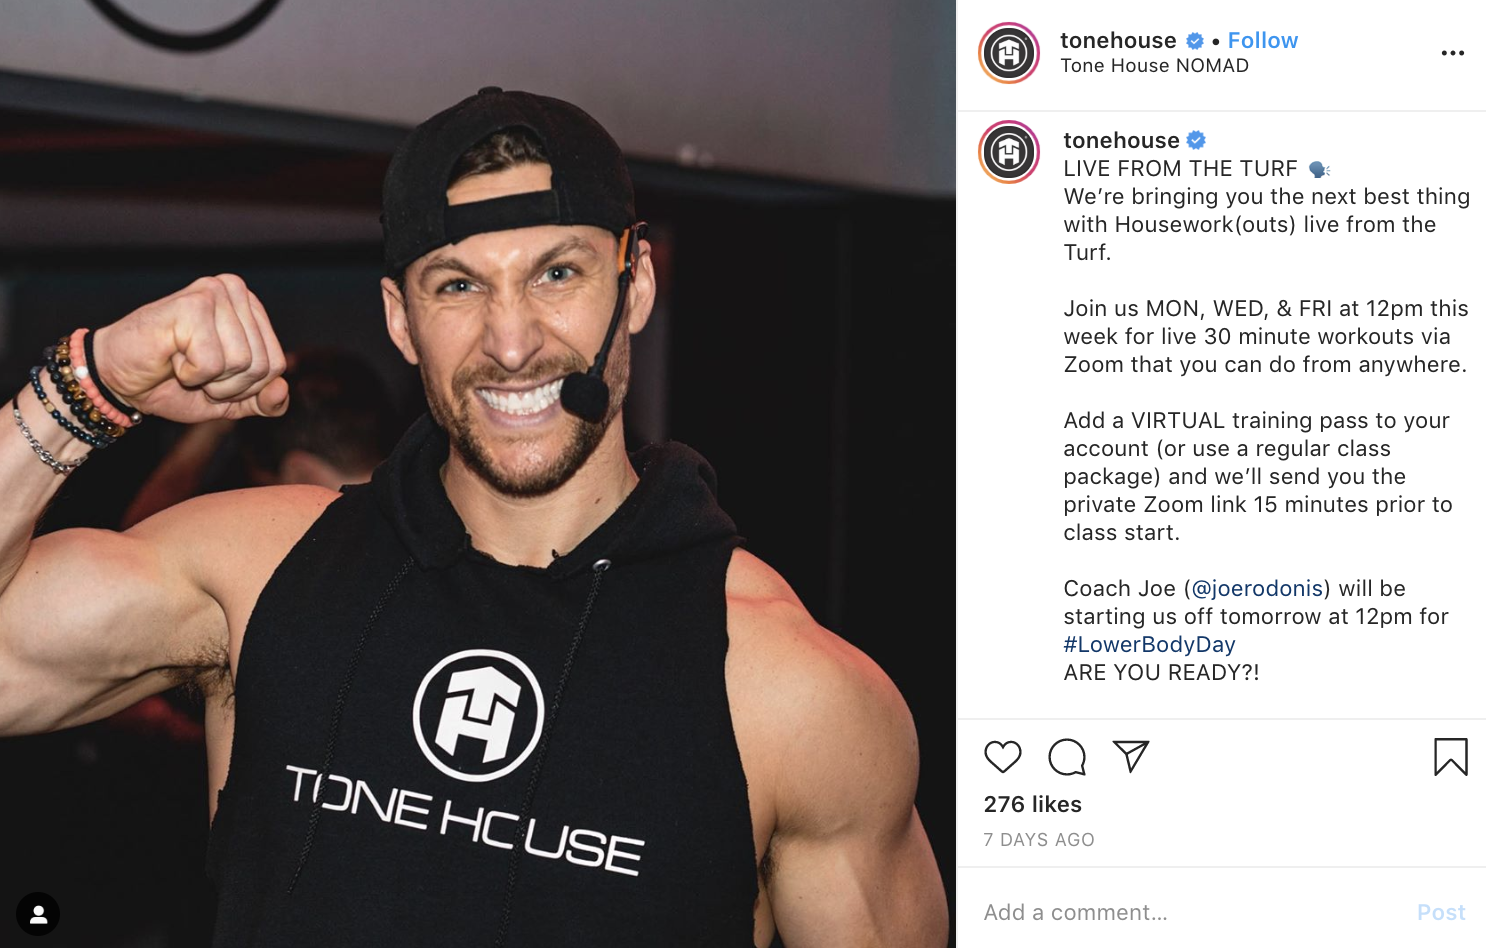 Tone House's House Work live class announcement.